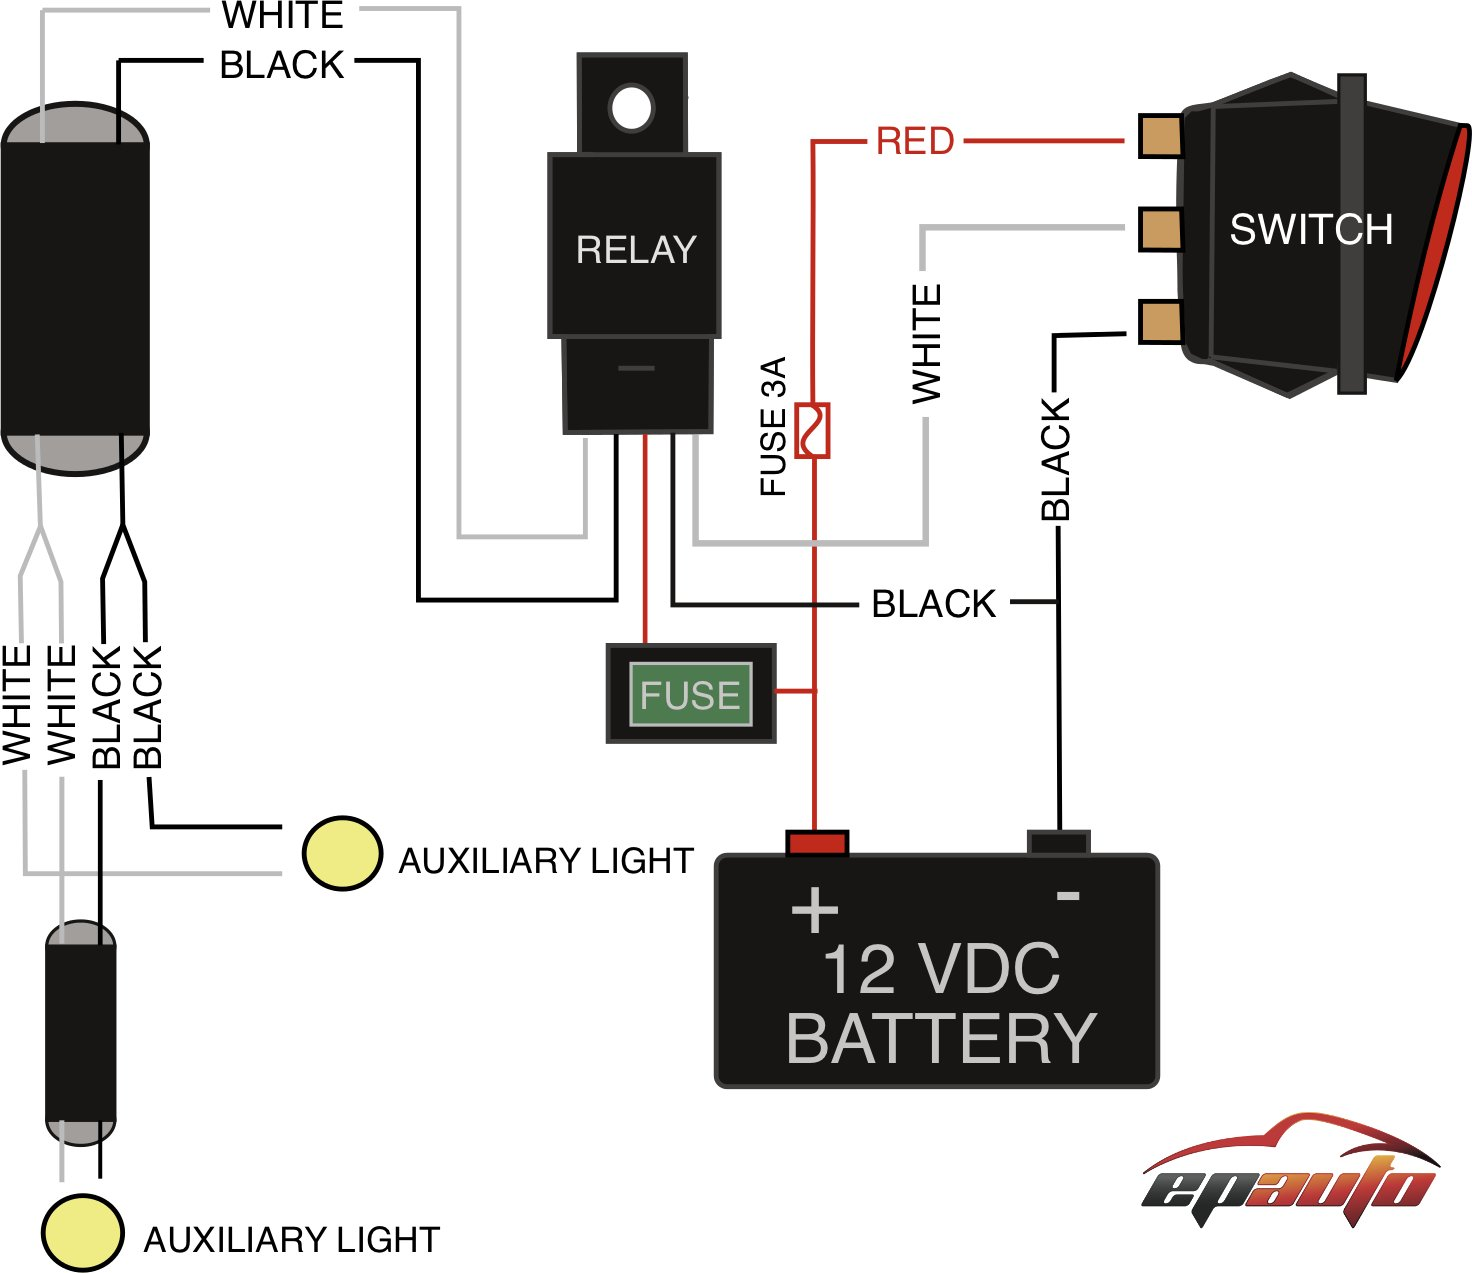 led light bar wiring harness diagram - diagram stream led light bar relay wiring diagram #1